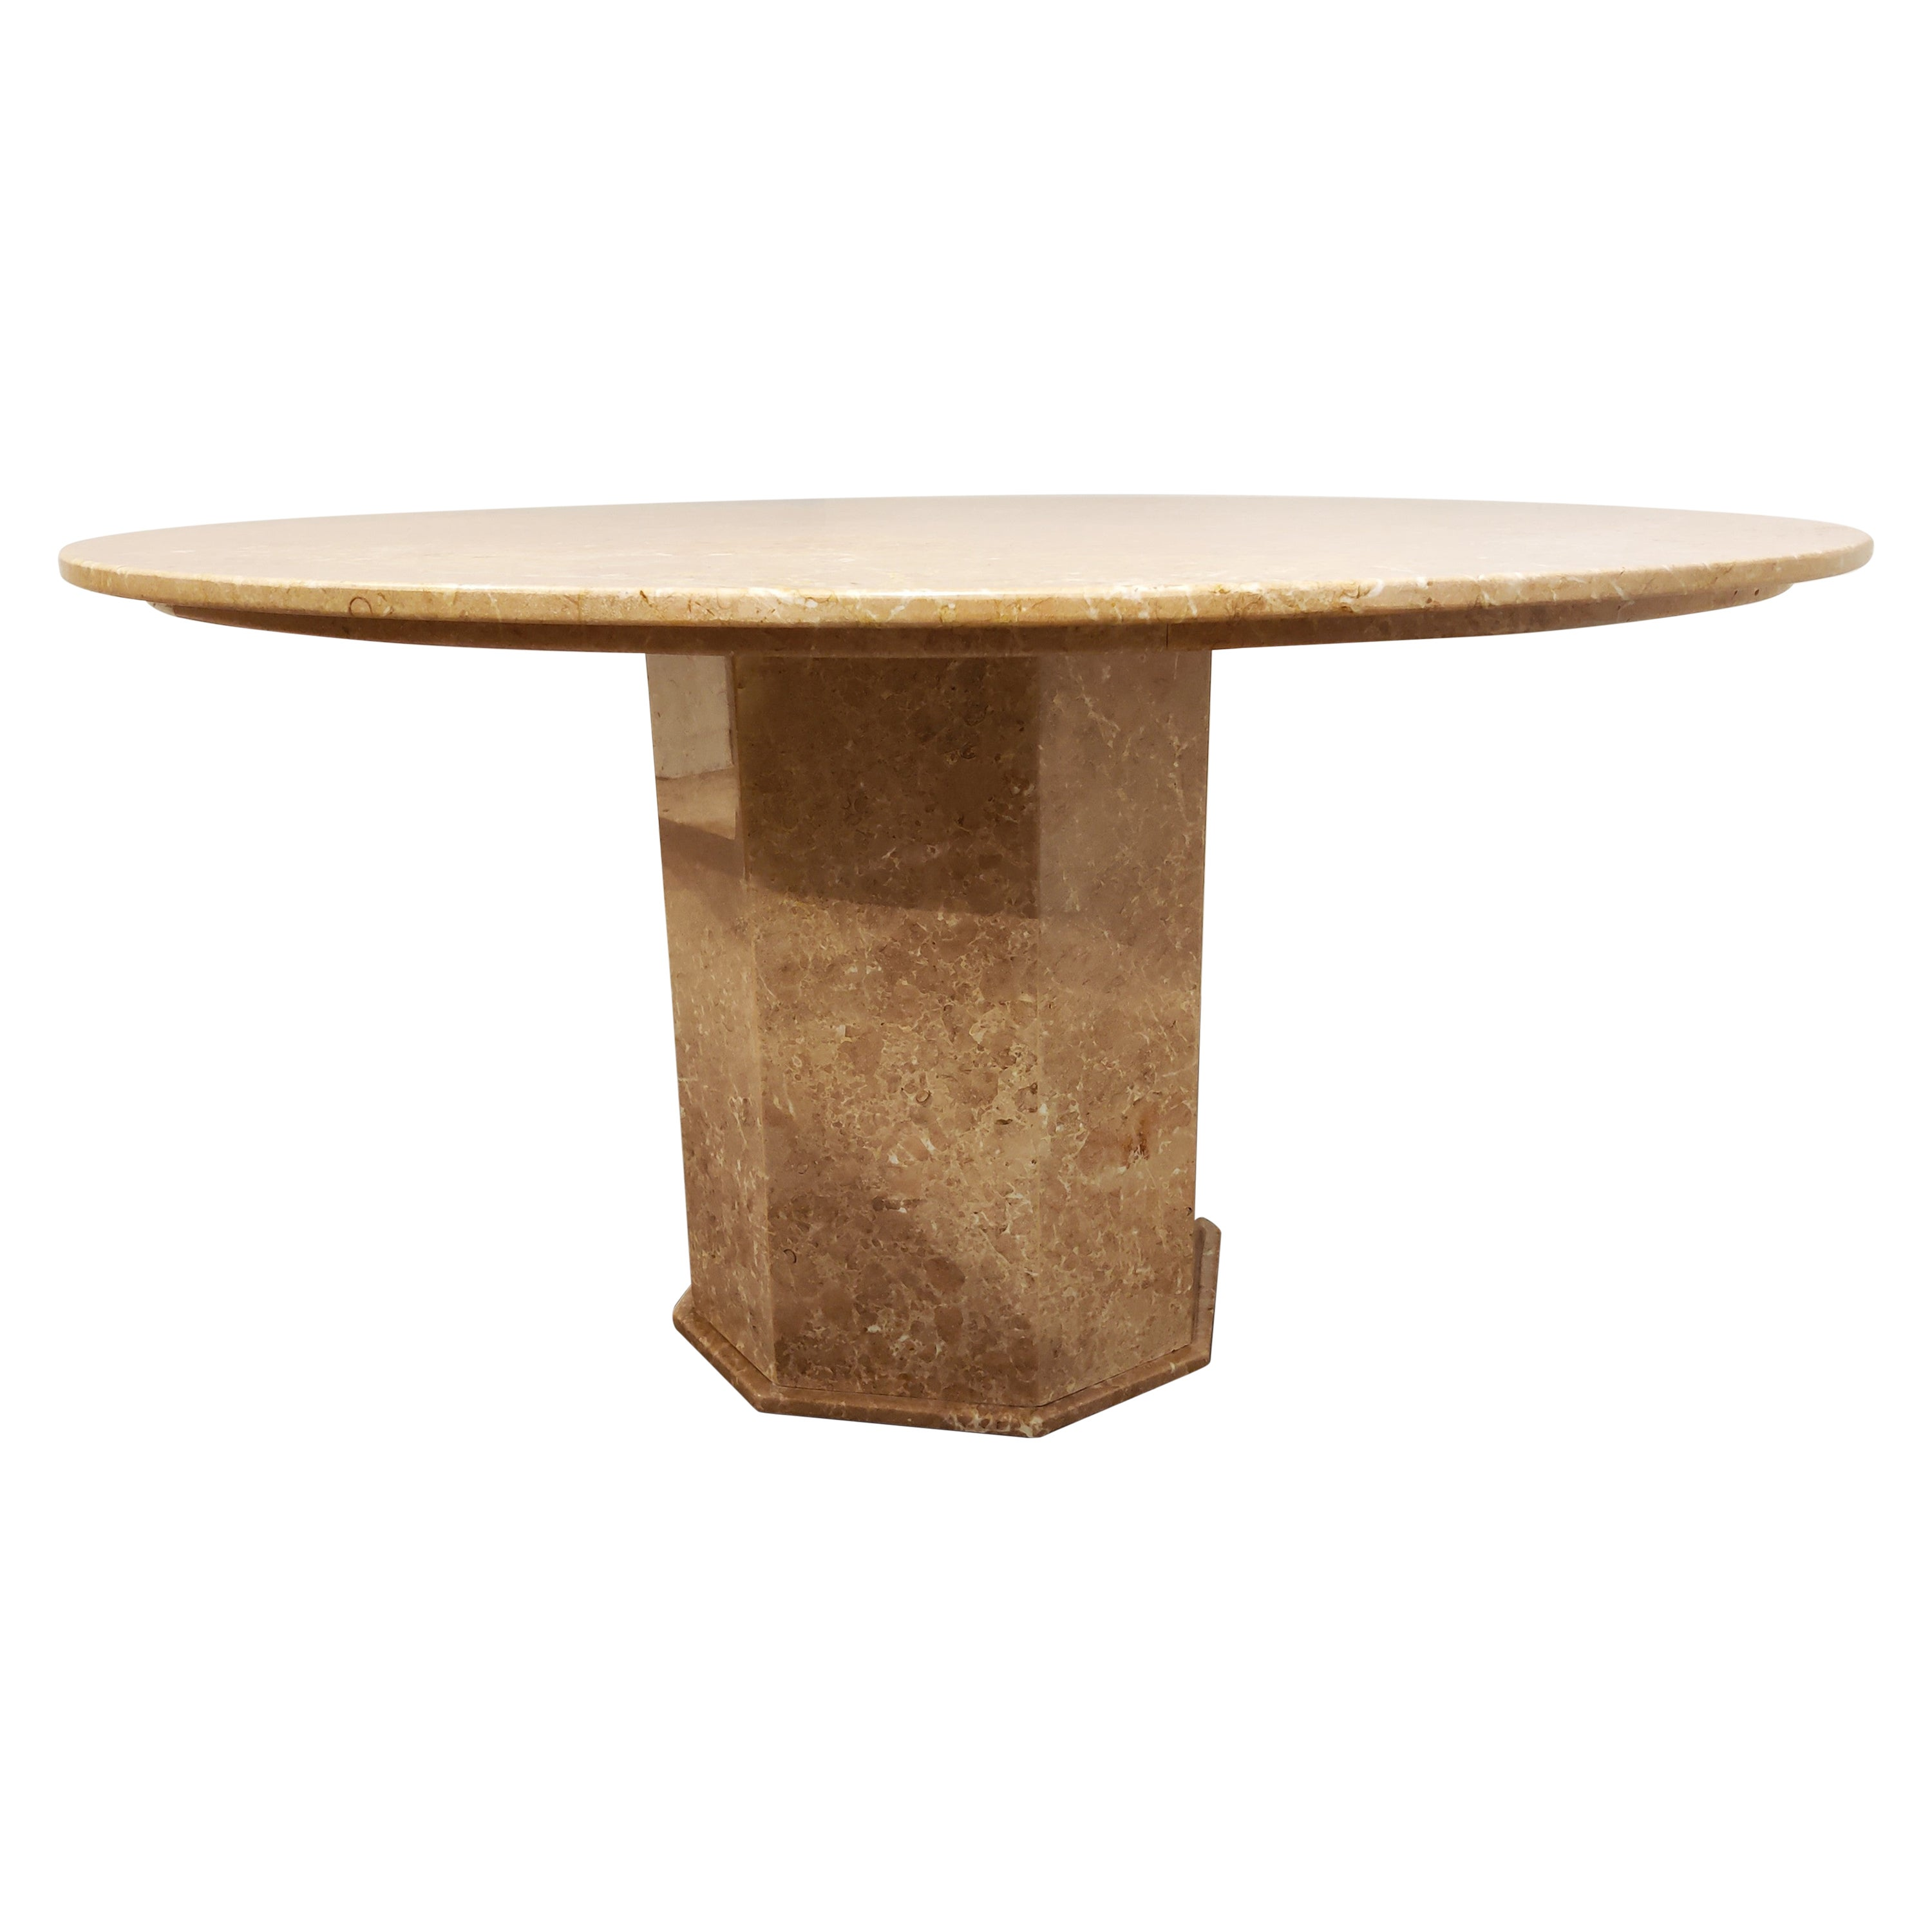 Round Italian Marble Dining Table, 1970s